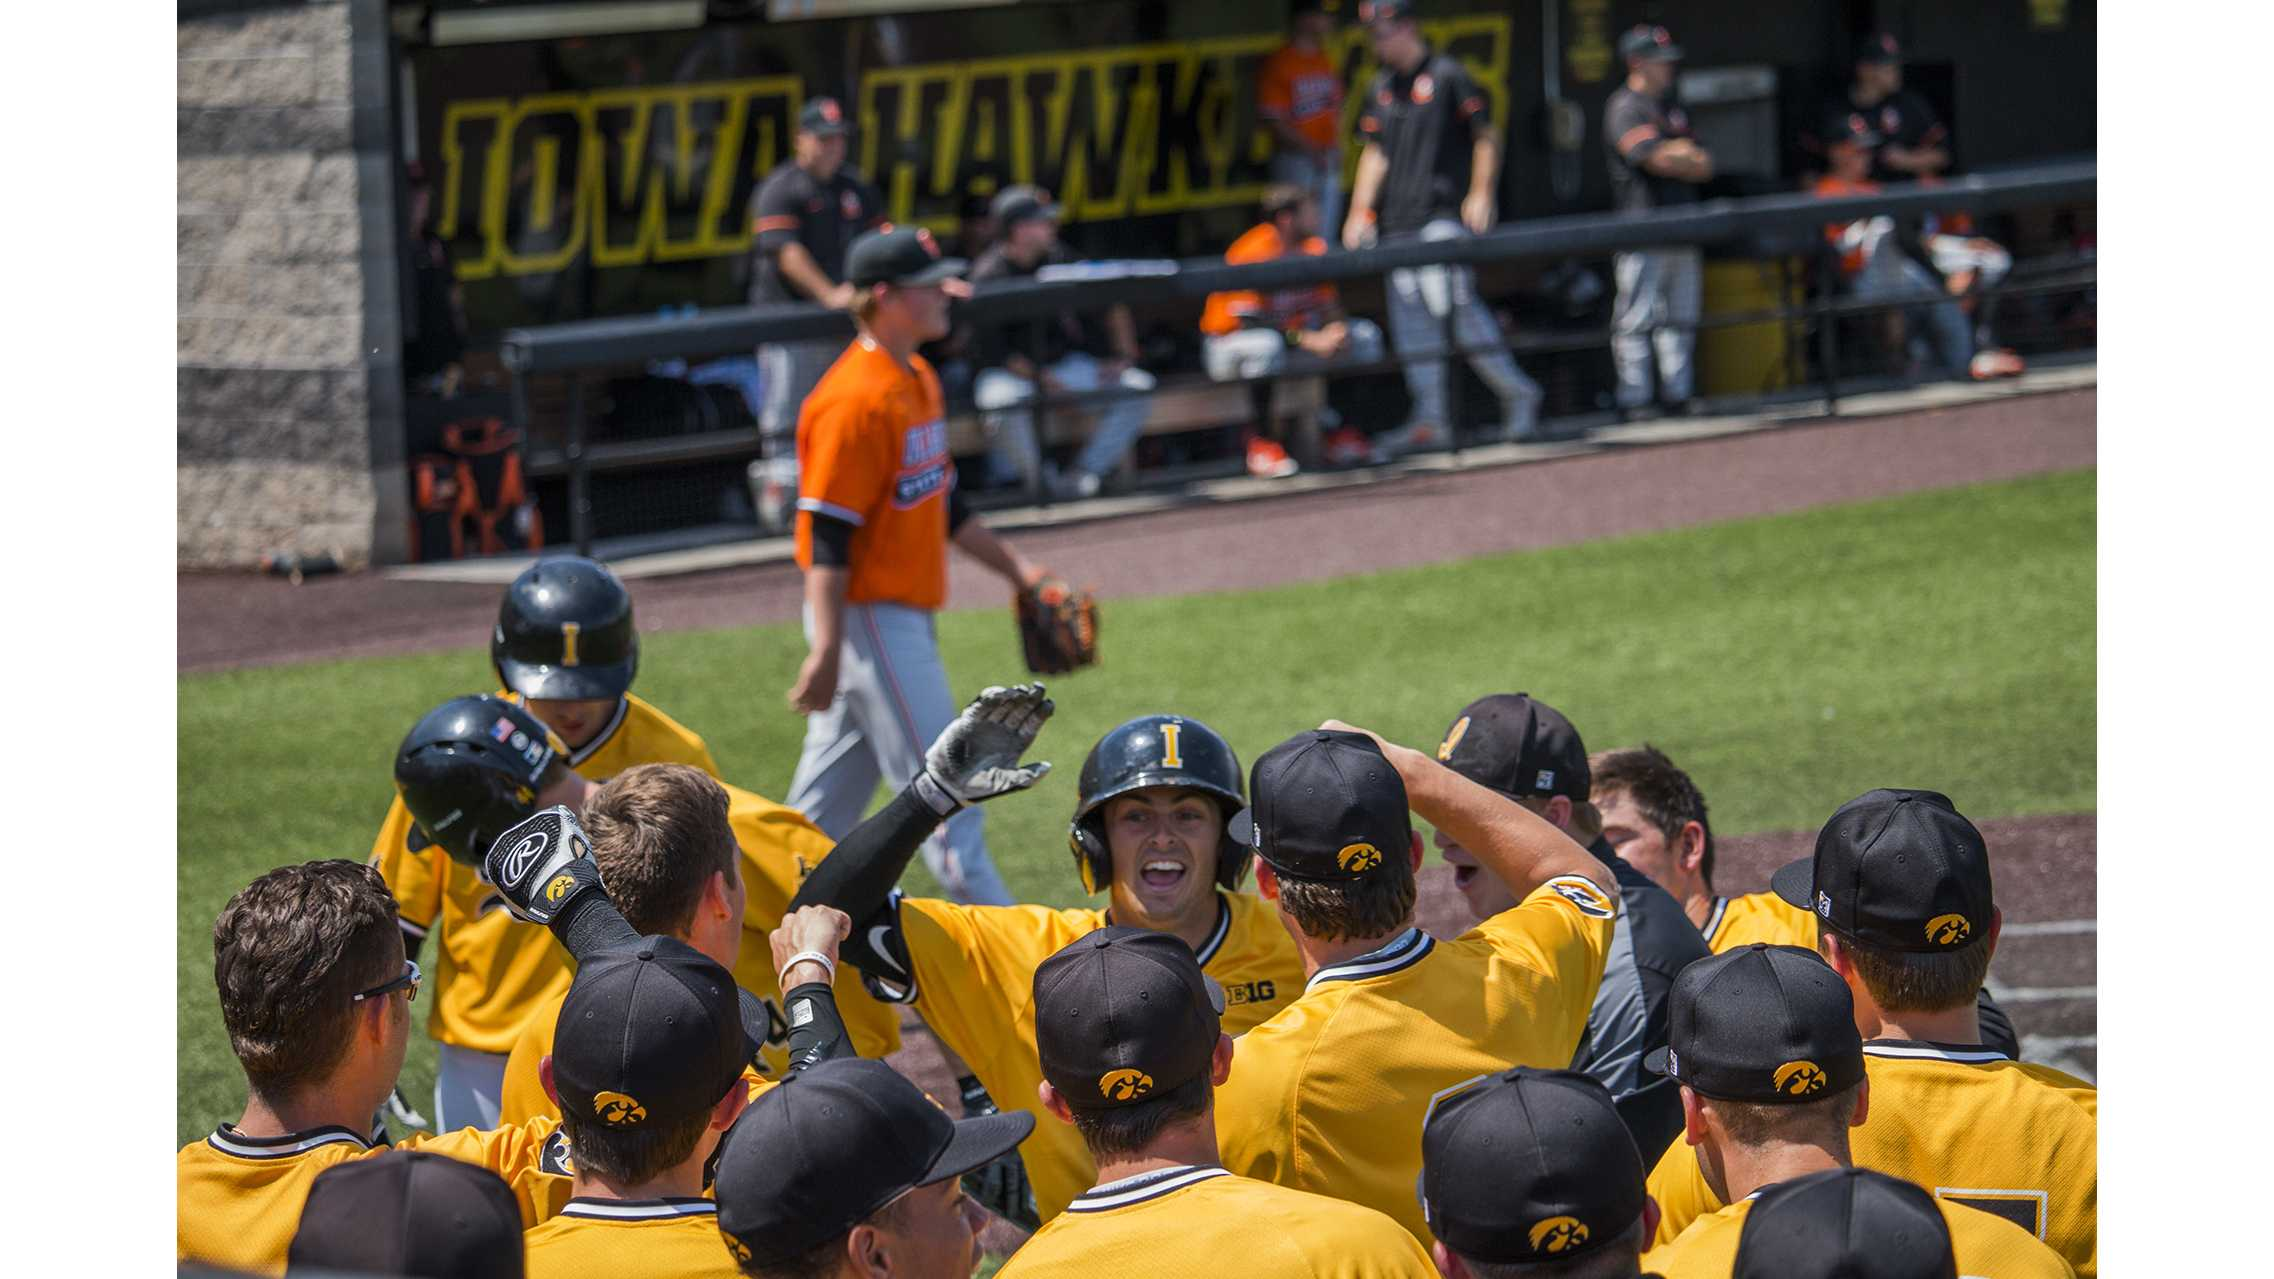 Hawkeyes need to keep winning as gauntlet lets up